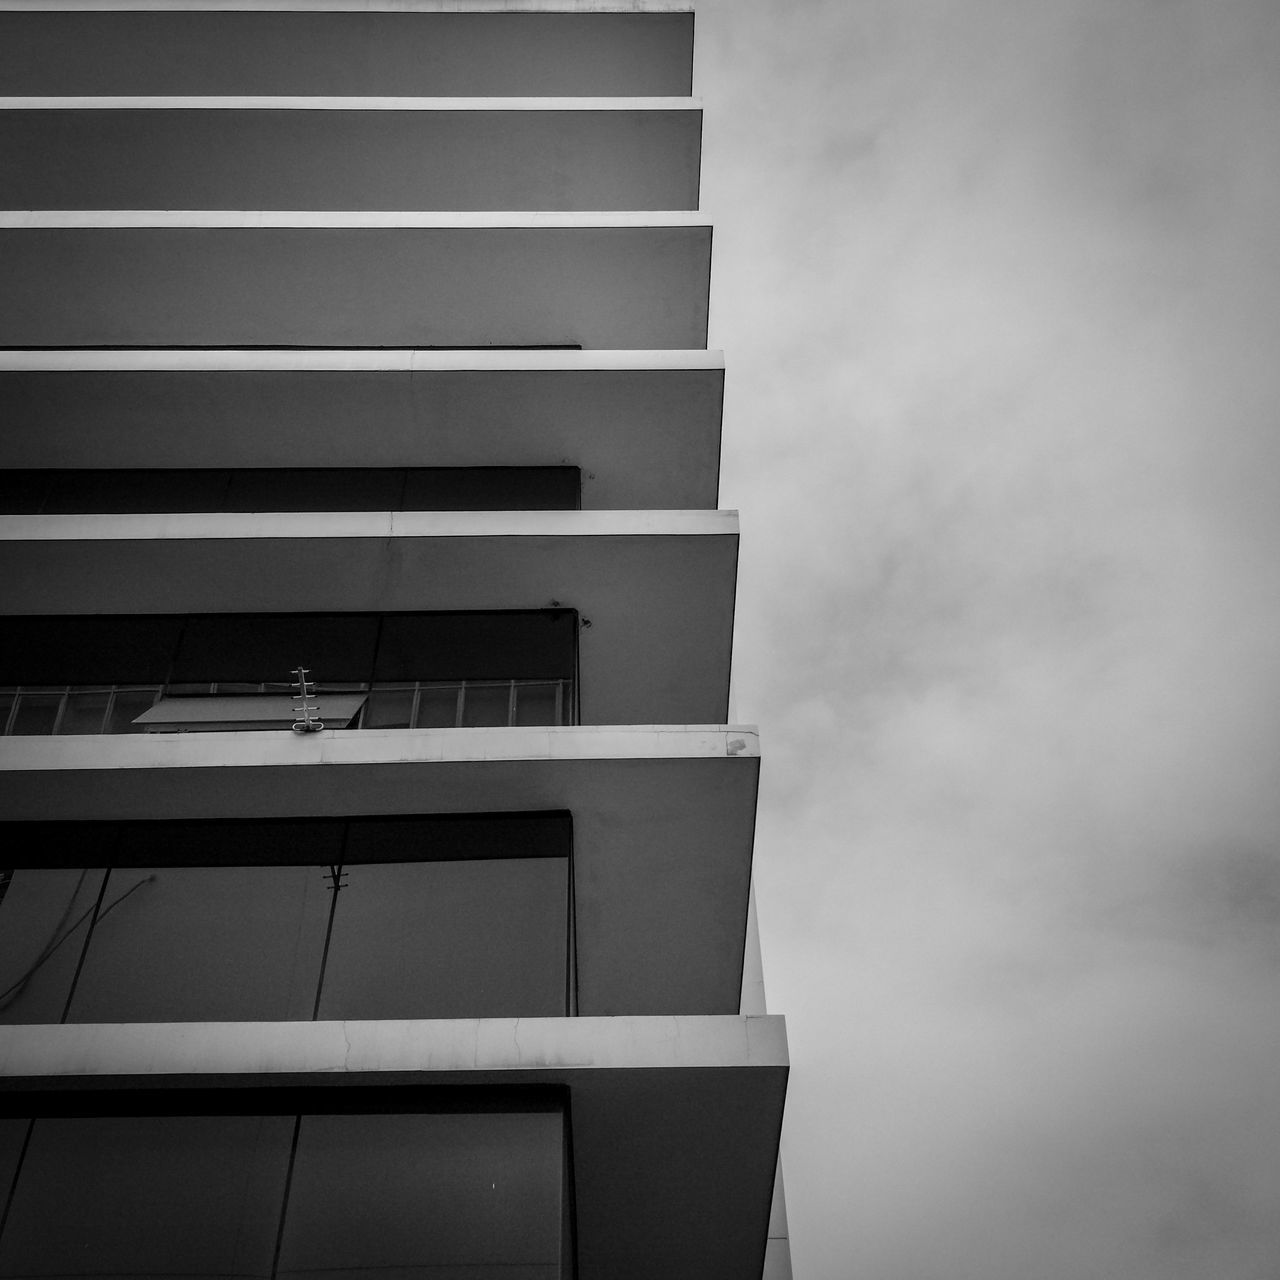 Architecture Building Exterior Sky No People Built Structure Outdoors Day Walking Around Black And White MIphotography Architecture